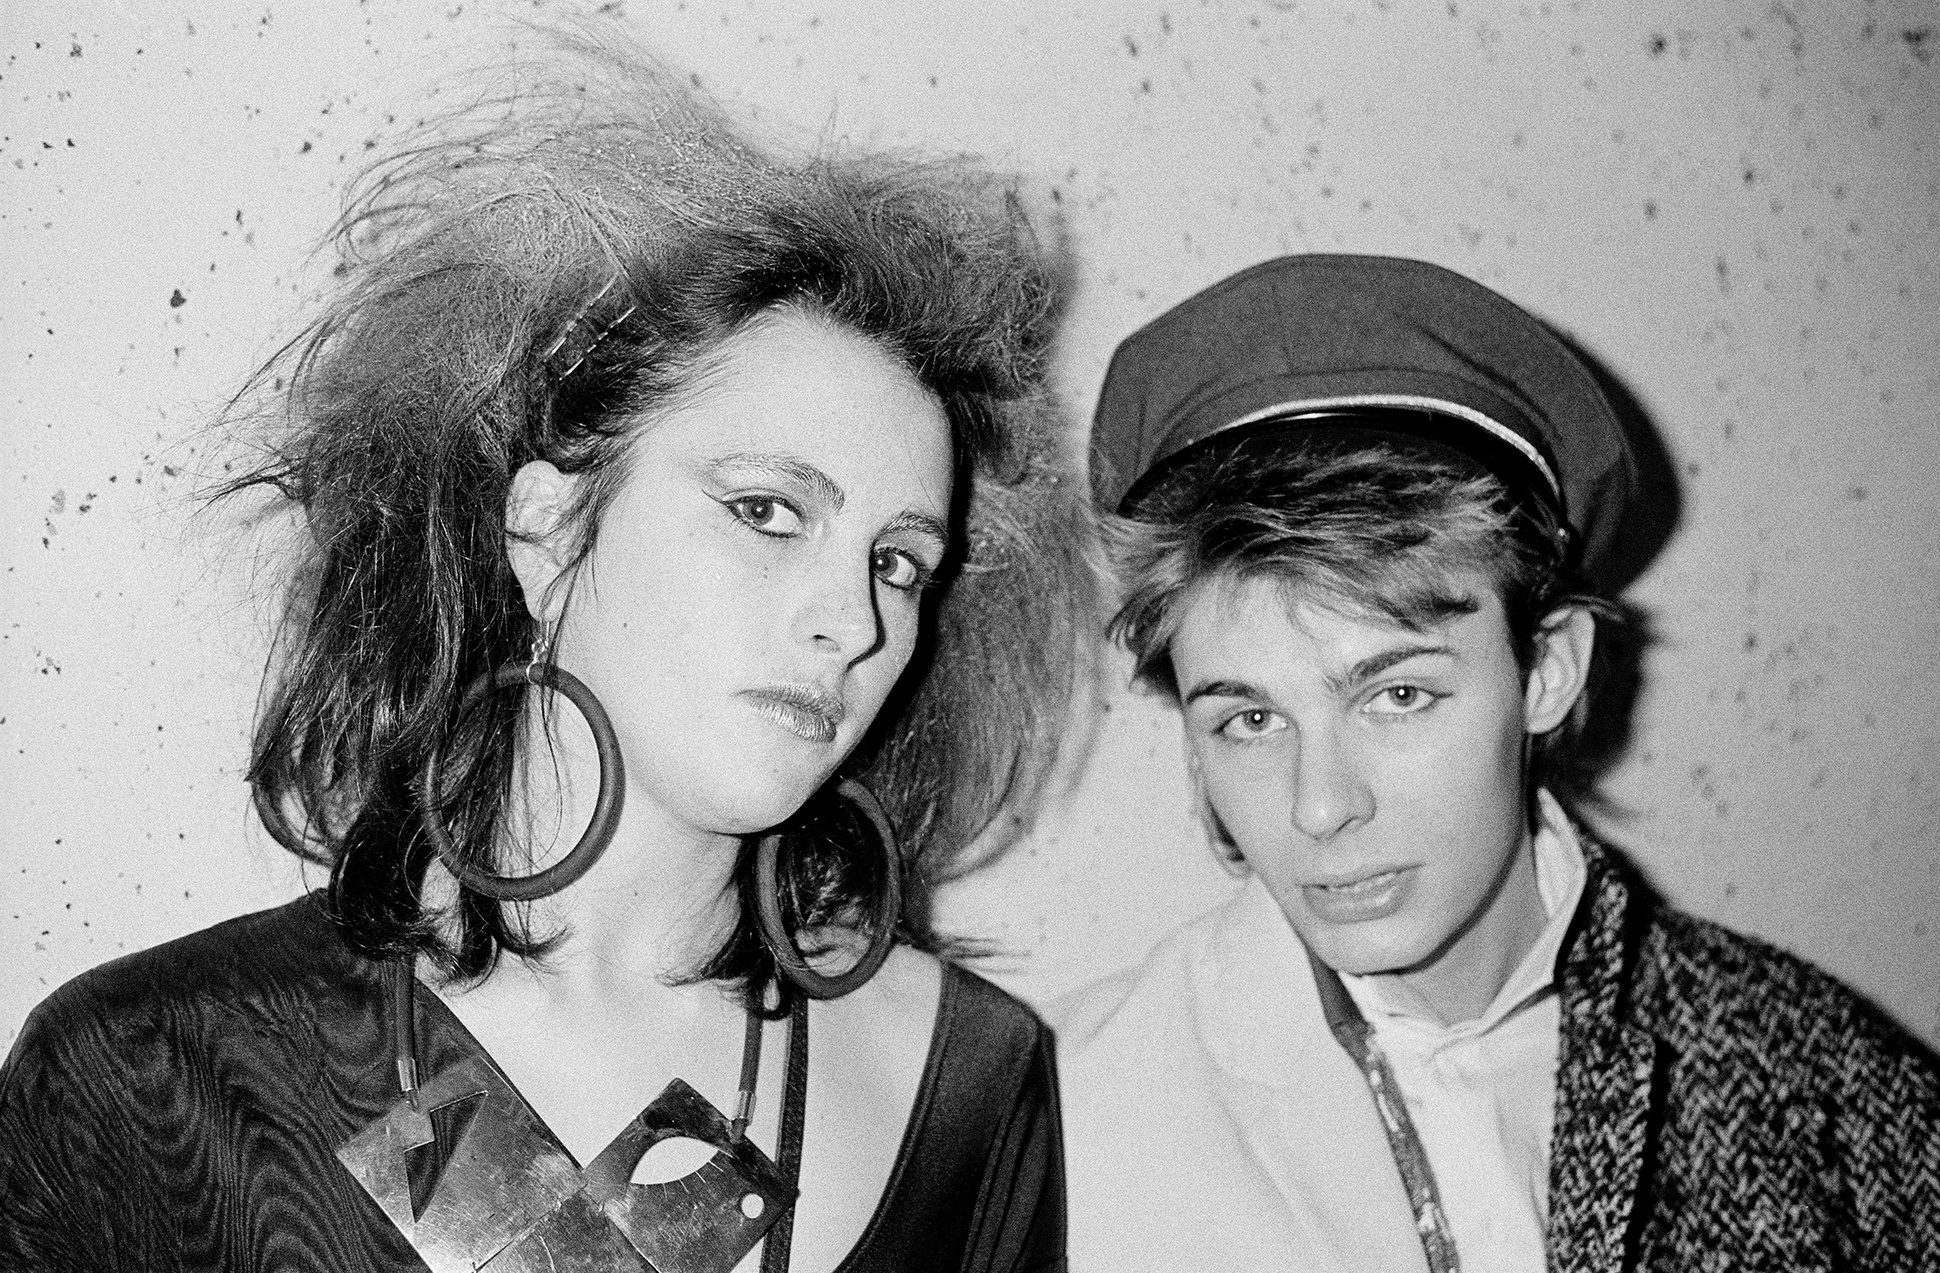 Two New Romantics with sailor hat at the Bristol University rag ball, 1985 by Marcus Graham